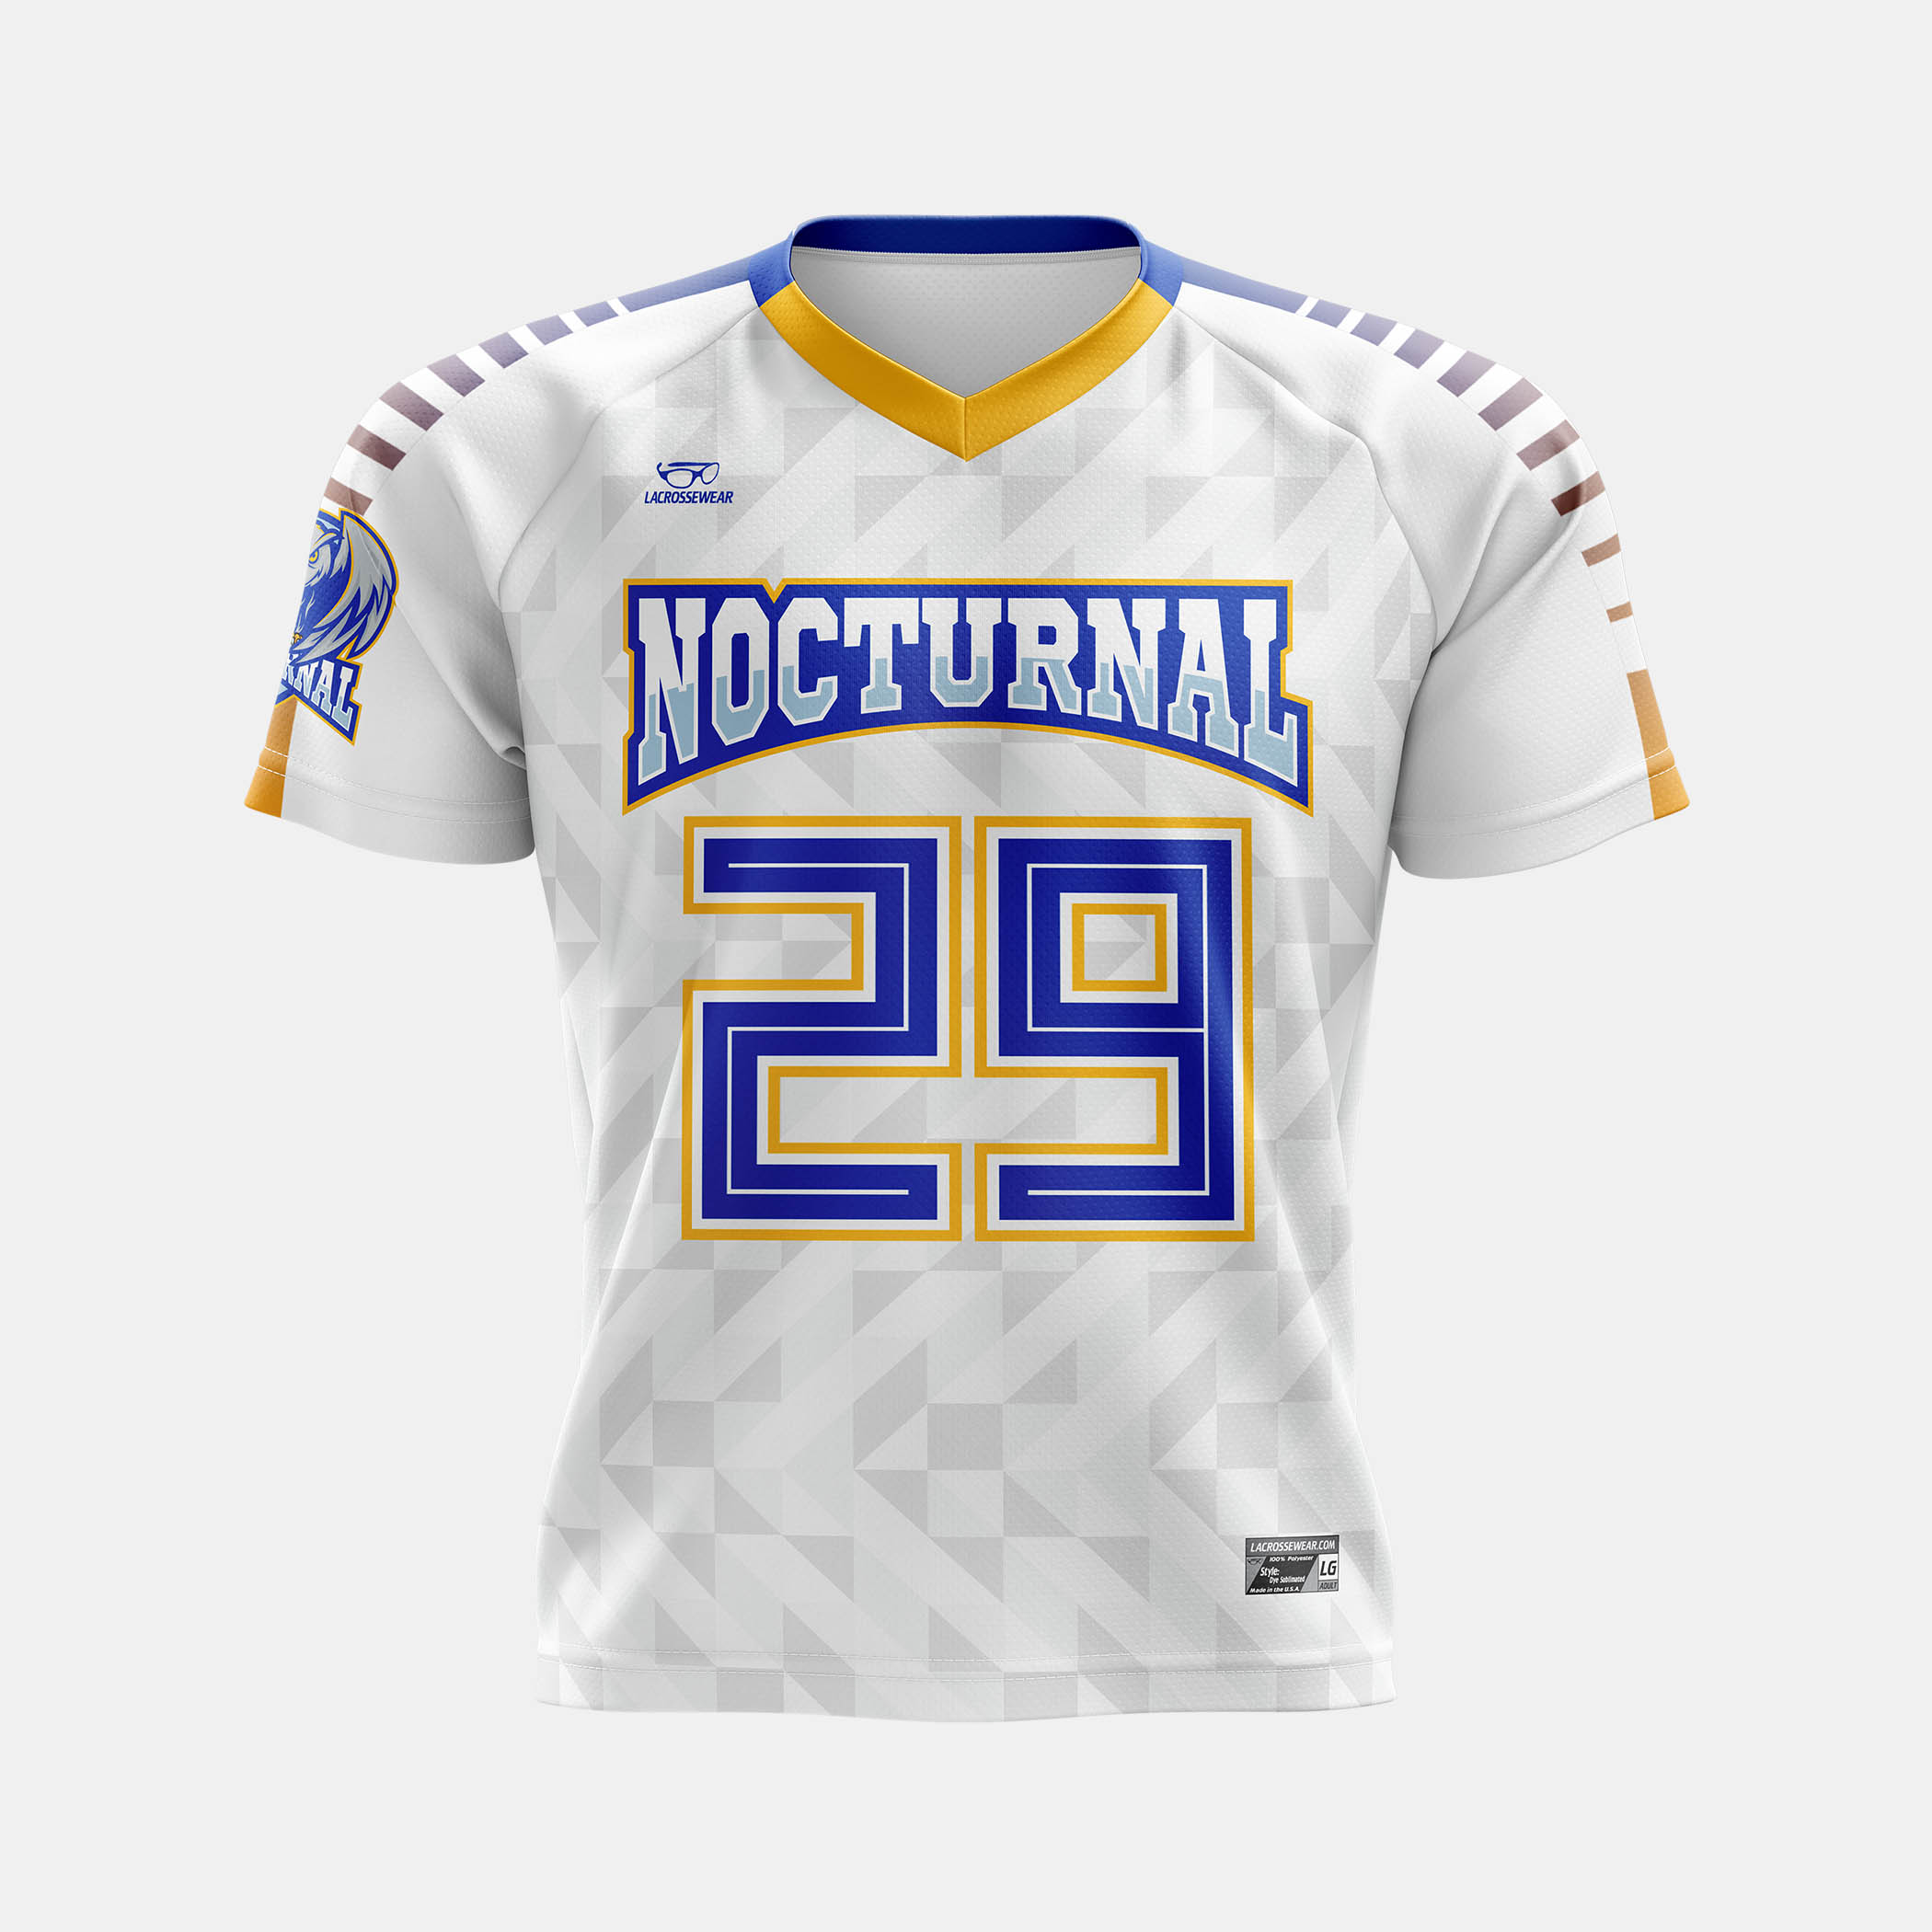 Nocturnal Lax Jersey Mock Front View